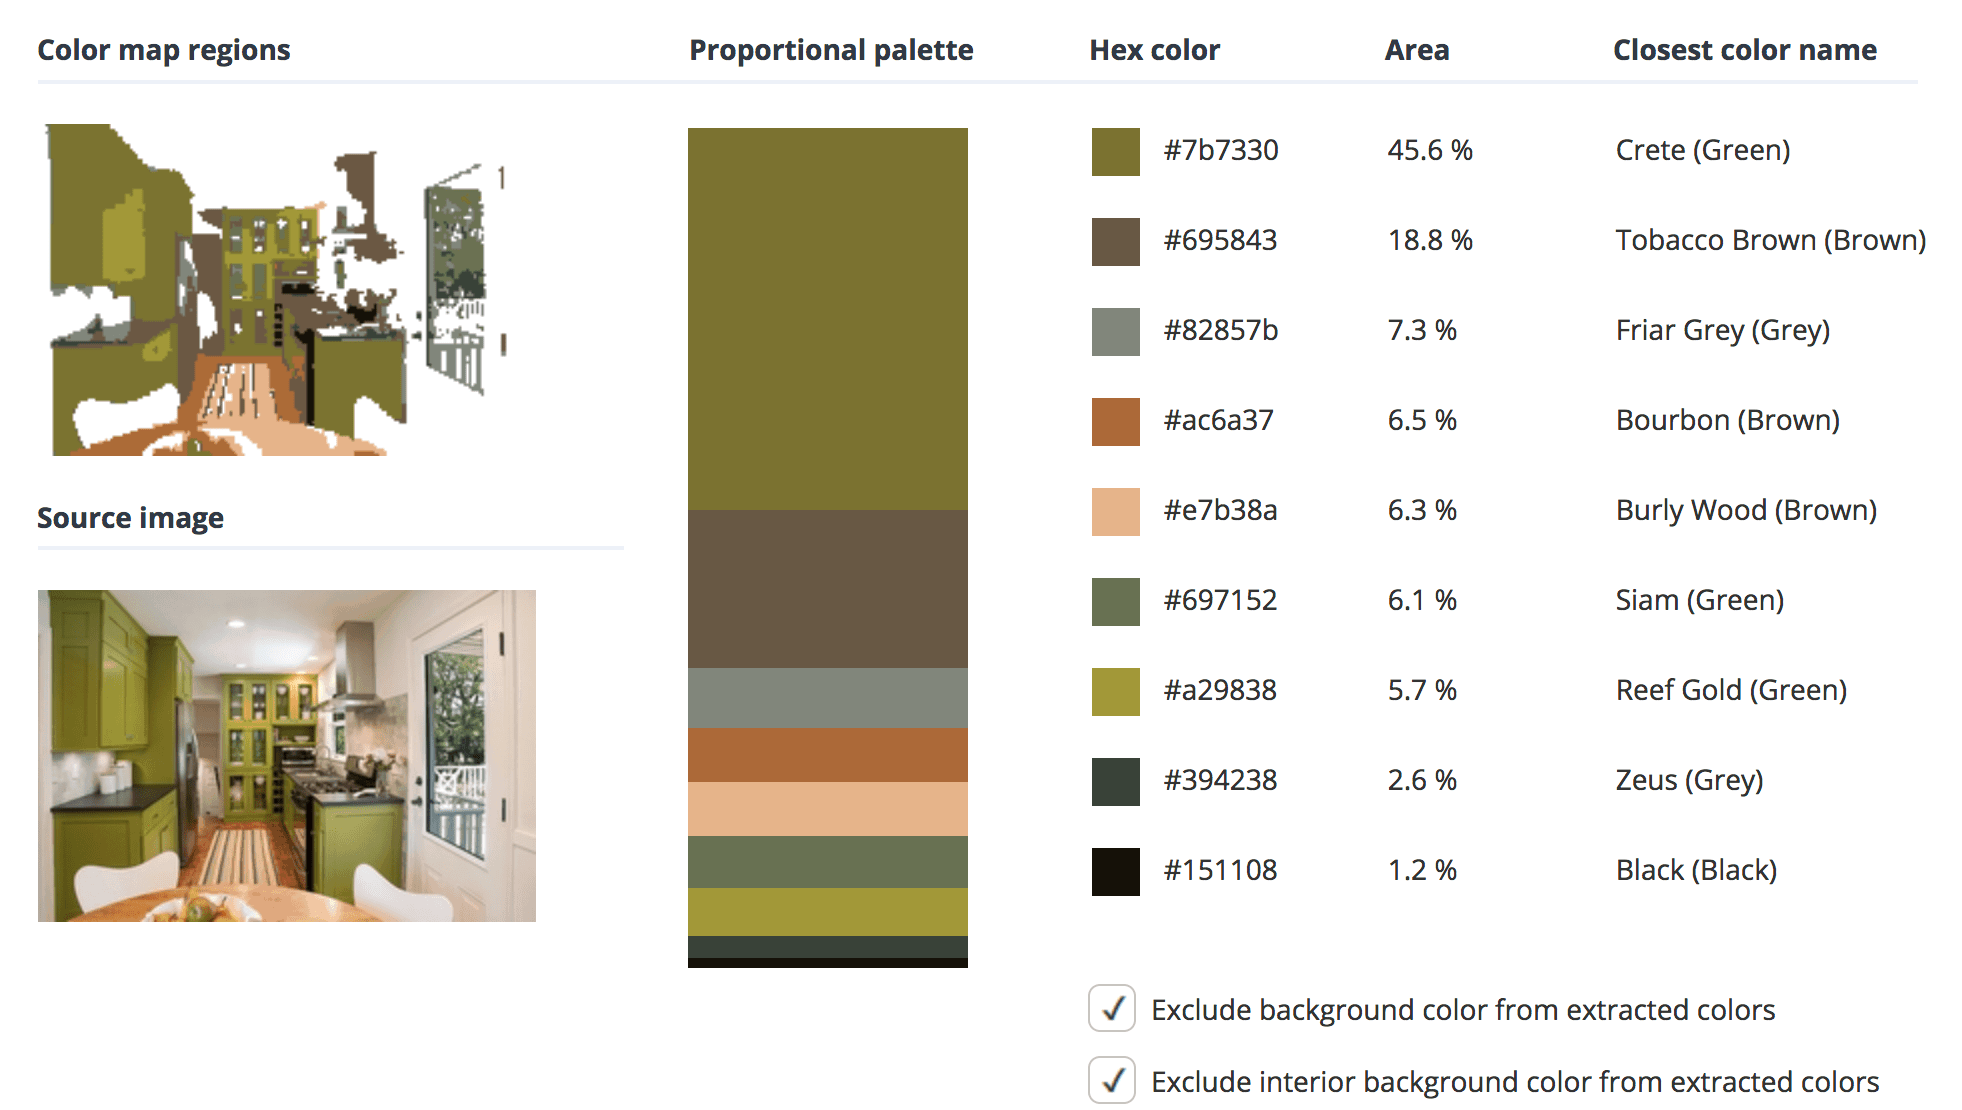 Green room combined with brown, grey and black.